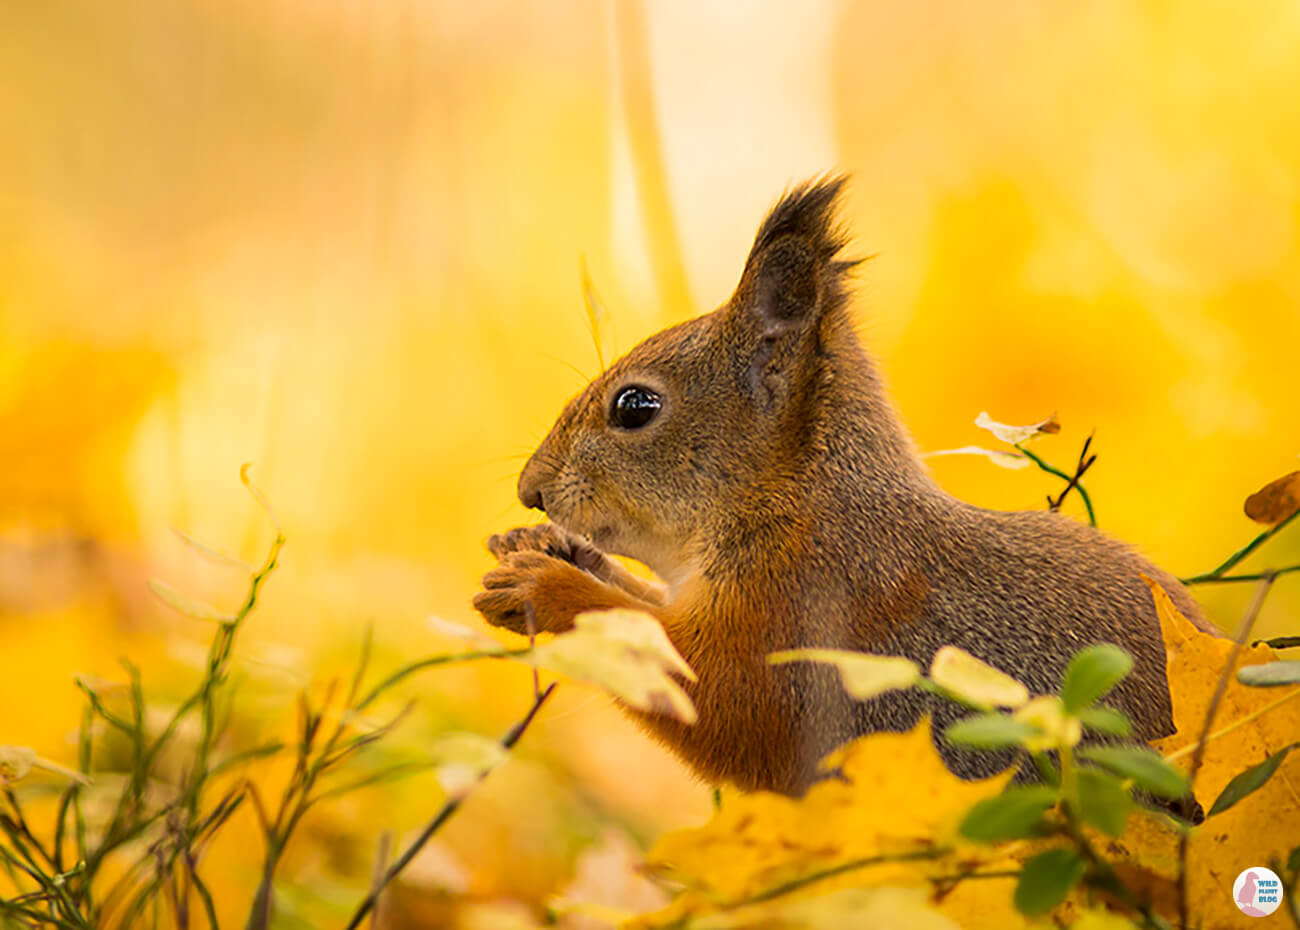 Red squirrel and autumn colors, Seurasaari, Helsinki